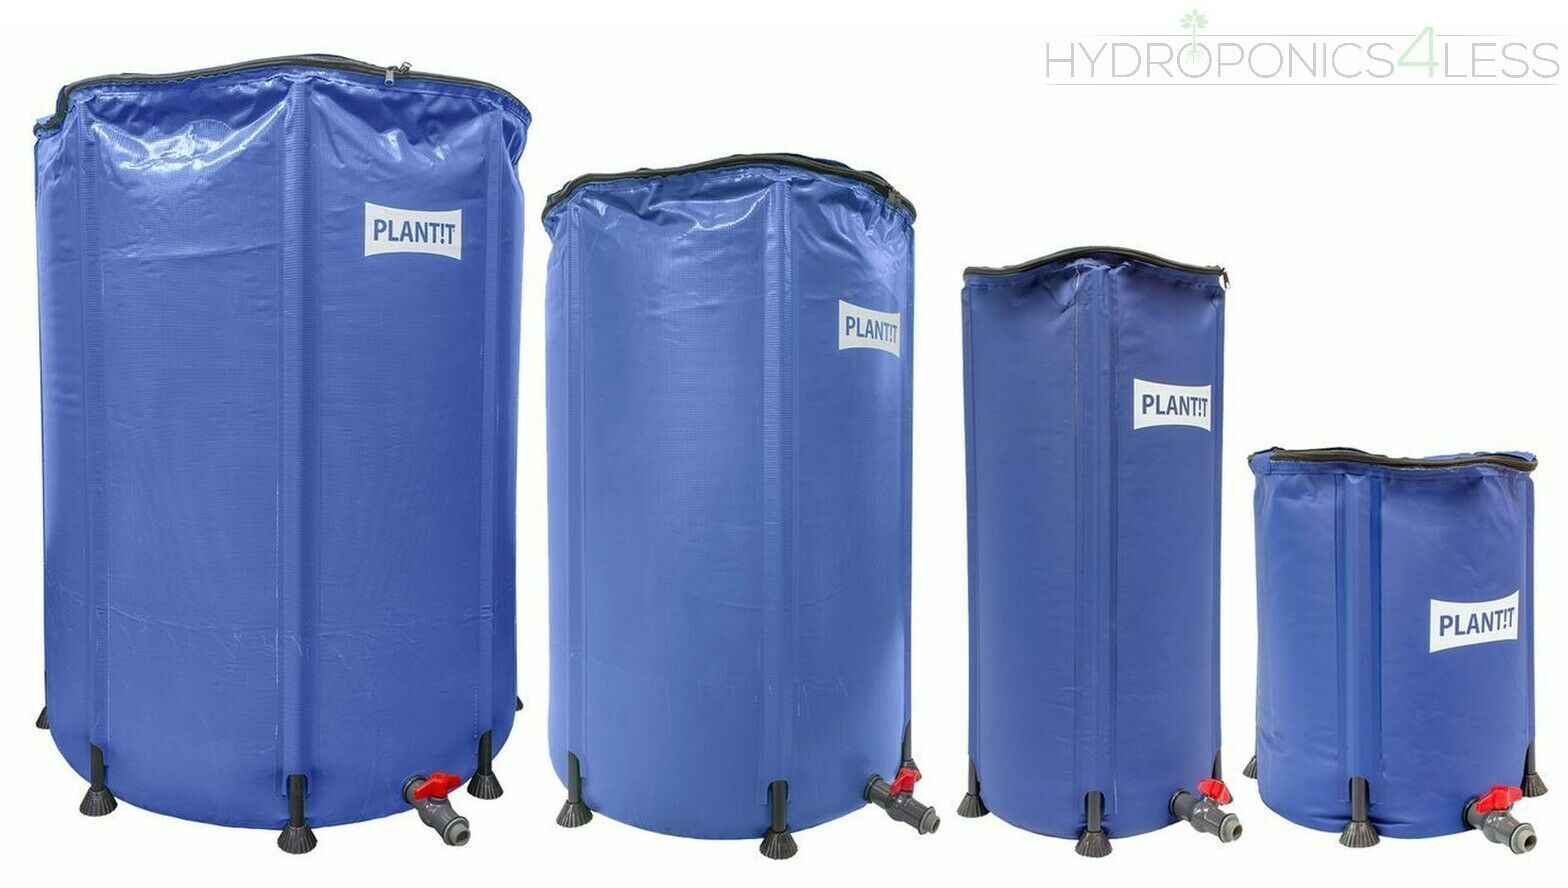 Flexi Tank Collapsible Compact Hydroponics Water Butt 60 100 250 500 780 1100L